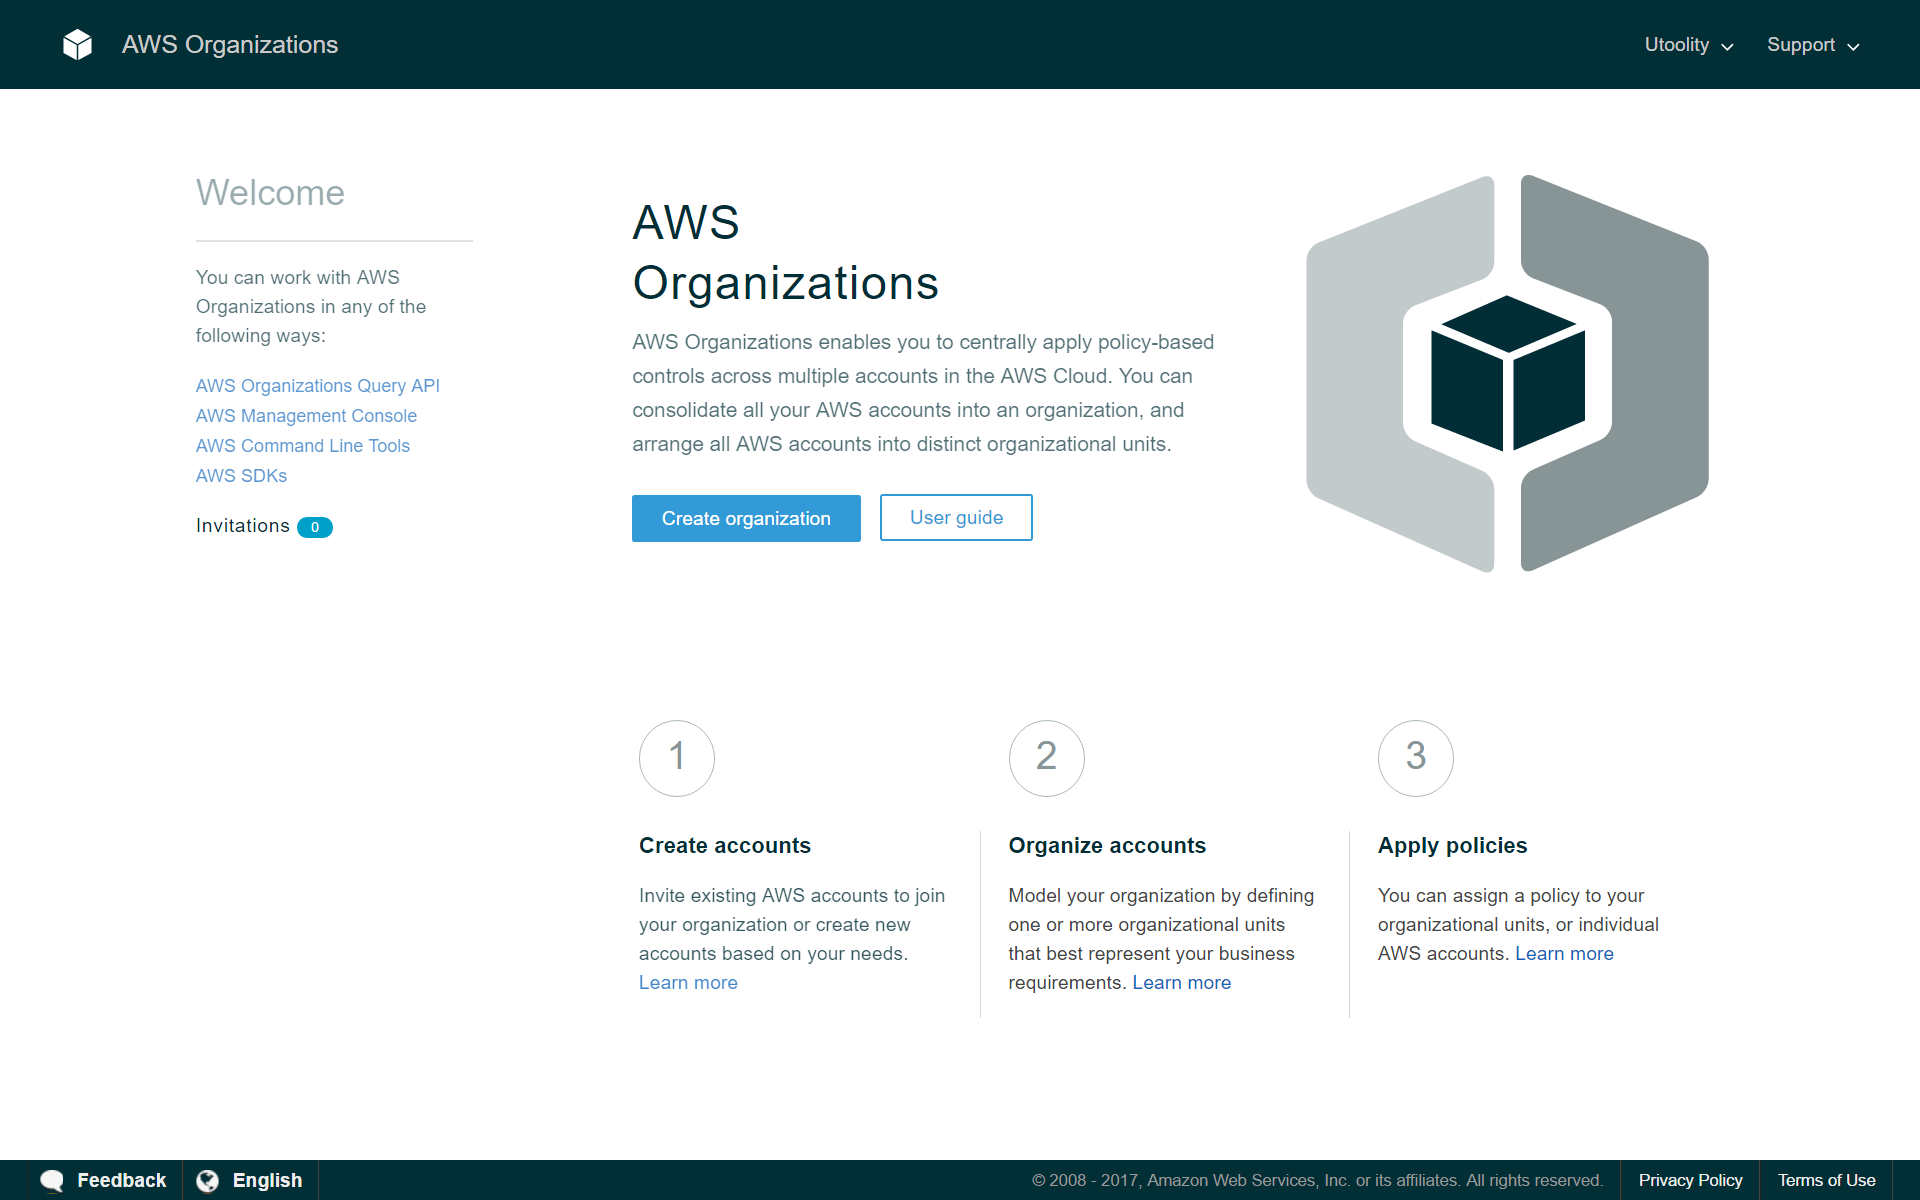 AWS Organizations Offers Centralized Policy-Based Account Management